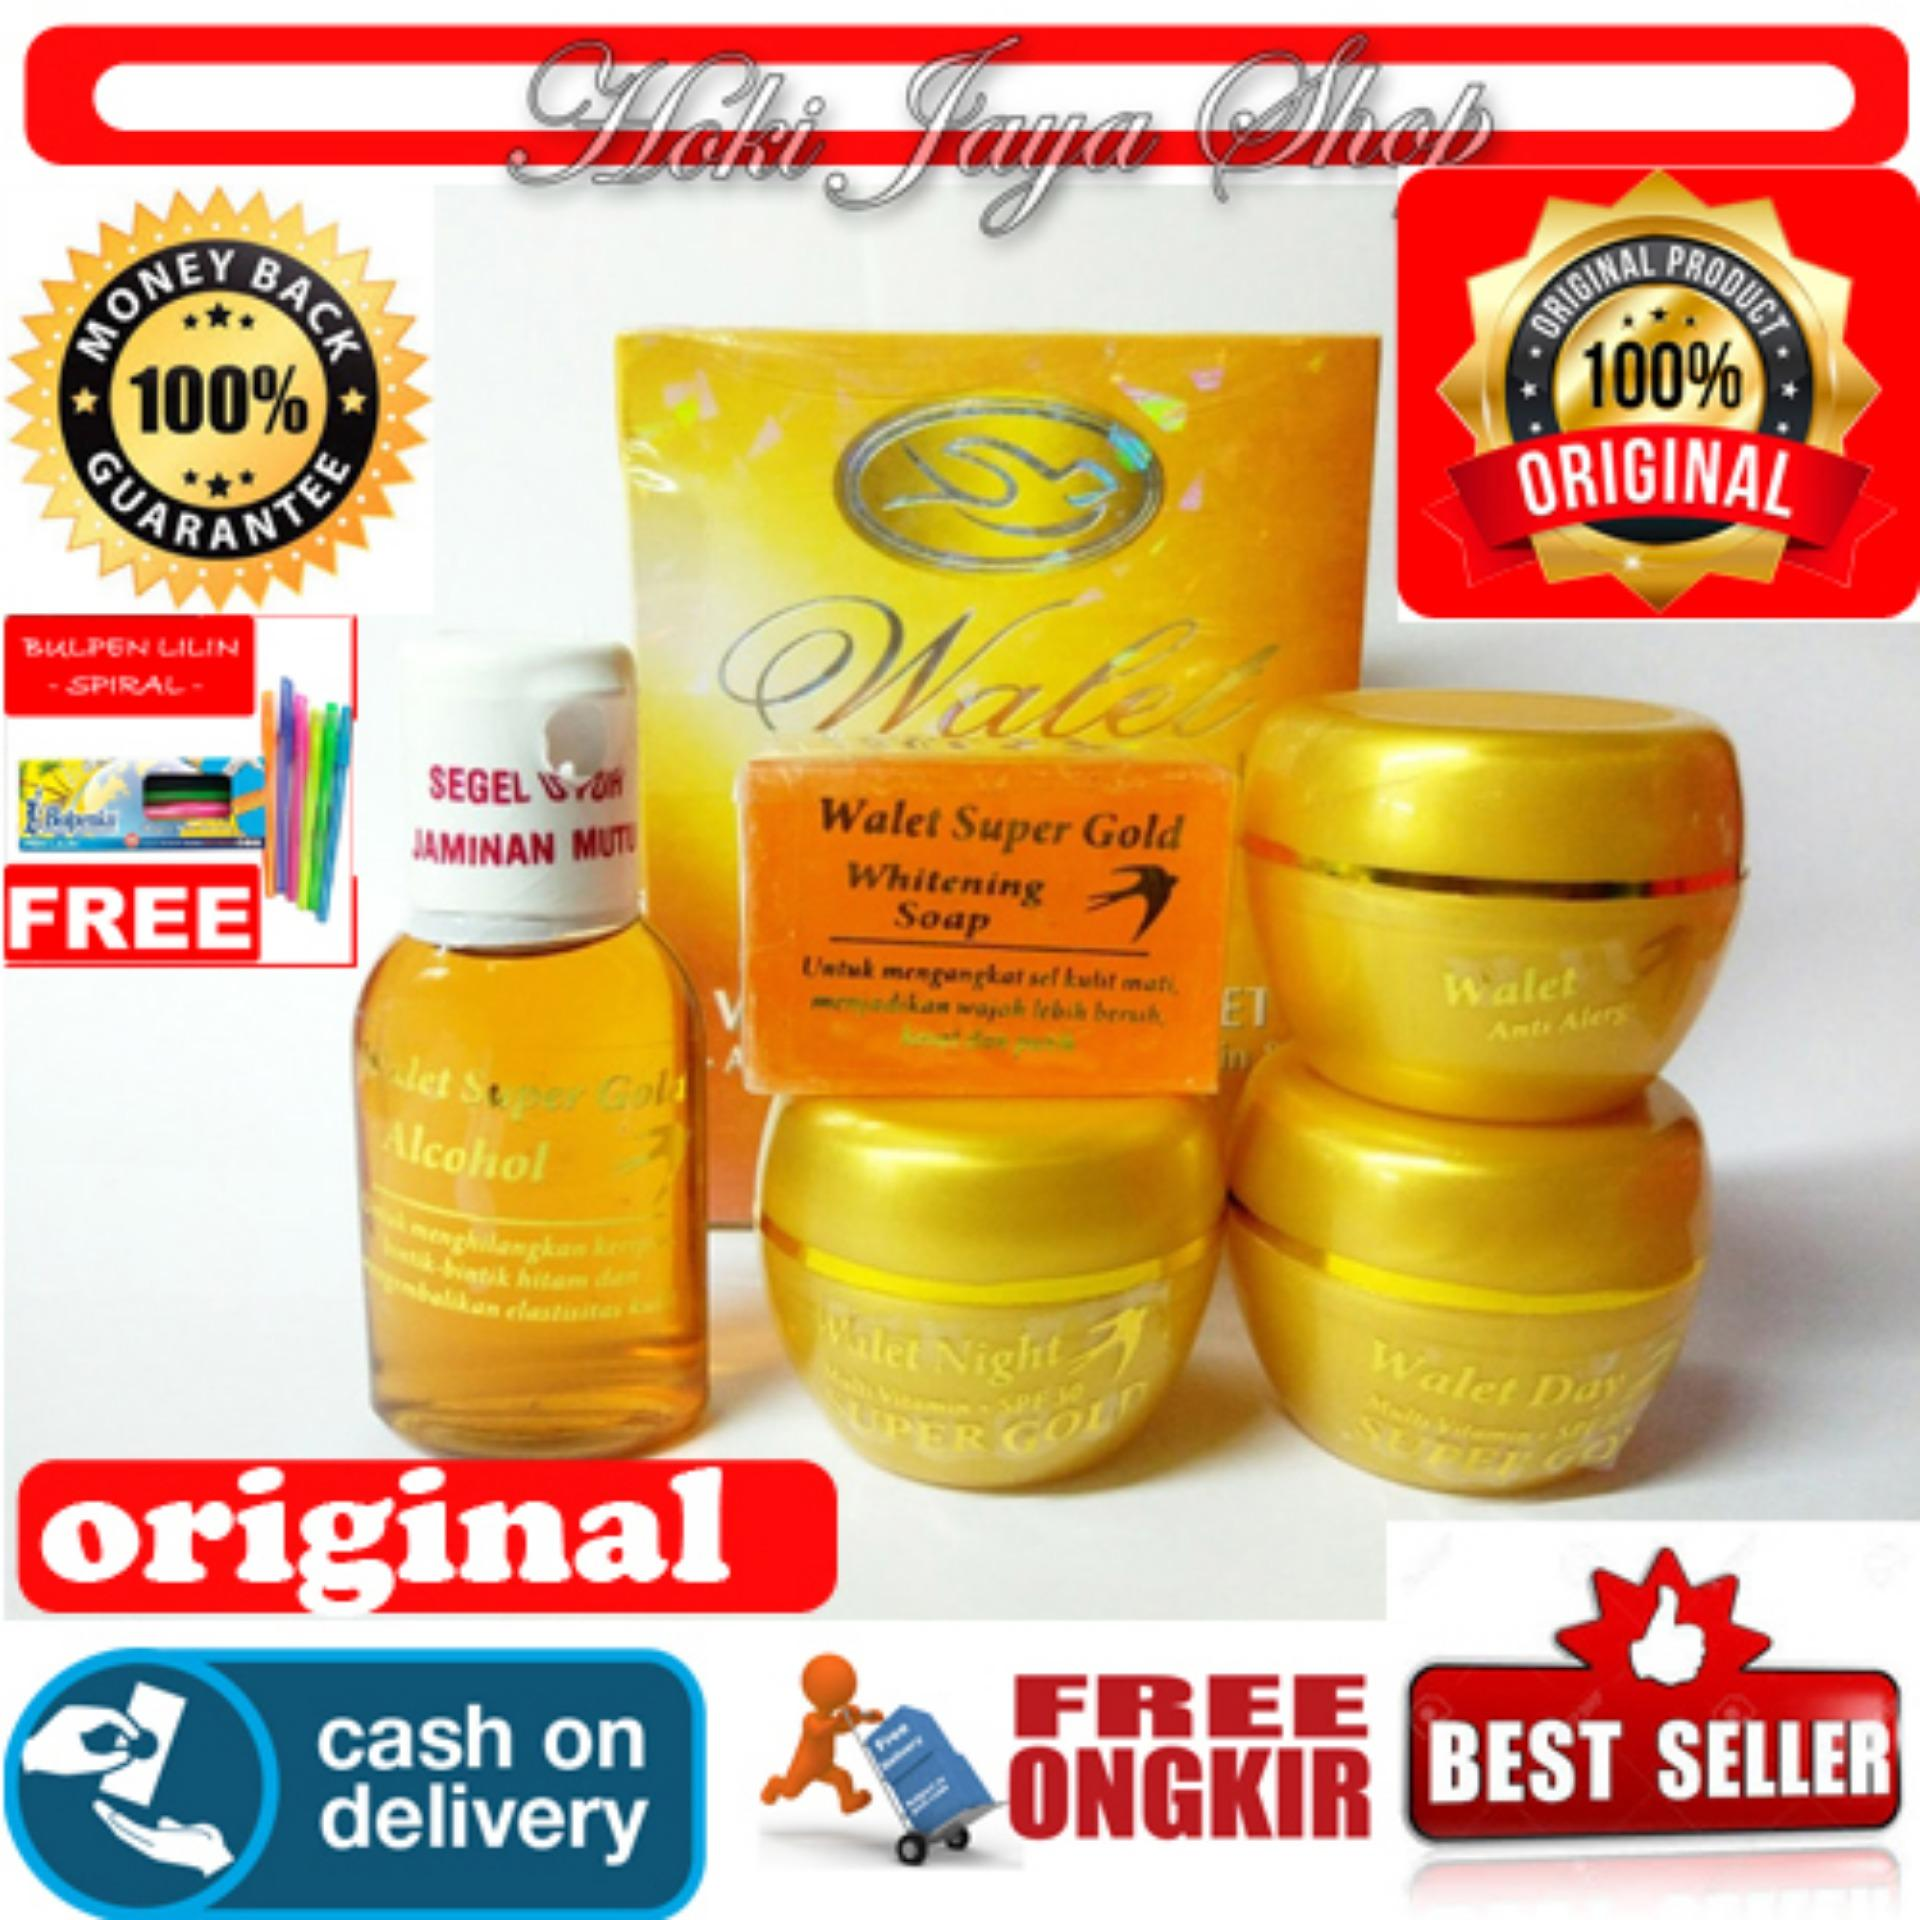 HOKI COD - Walet Super Gold (NATURAL) Premium Whitening Anti Aging Paket 5 In